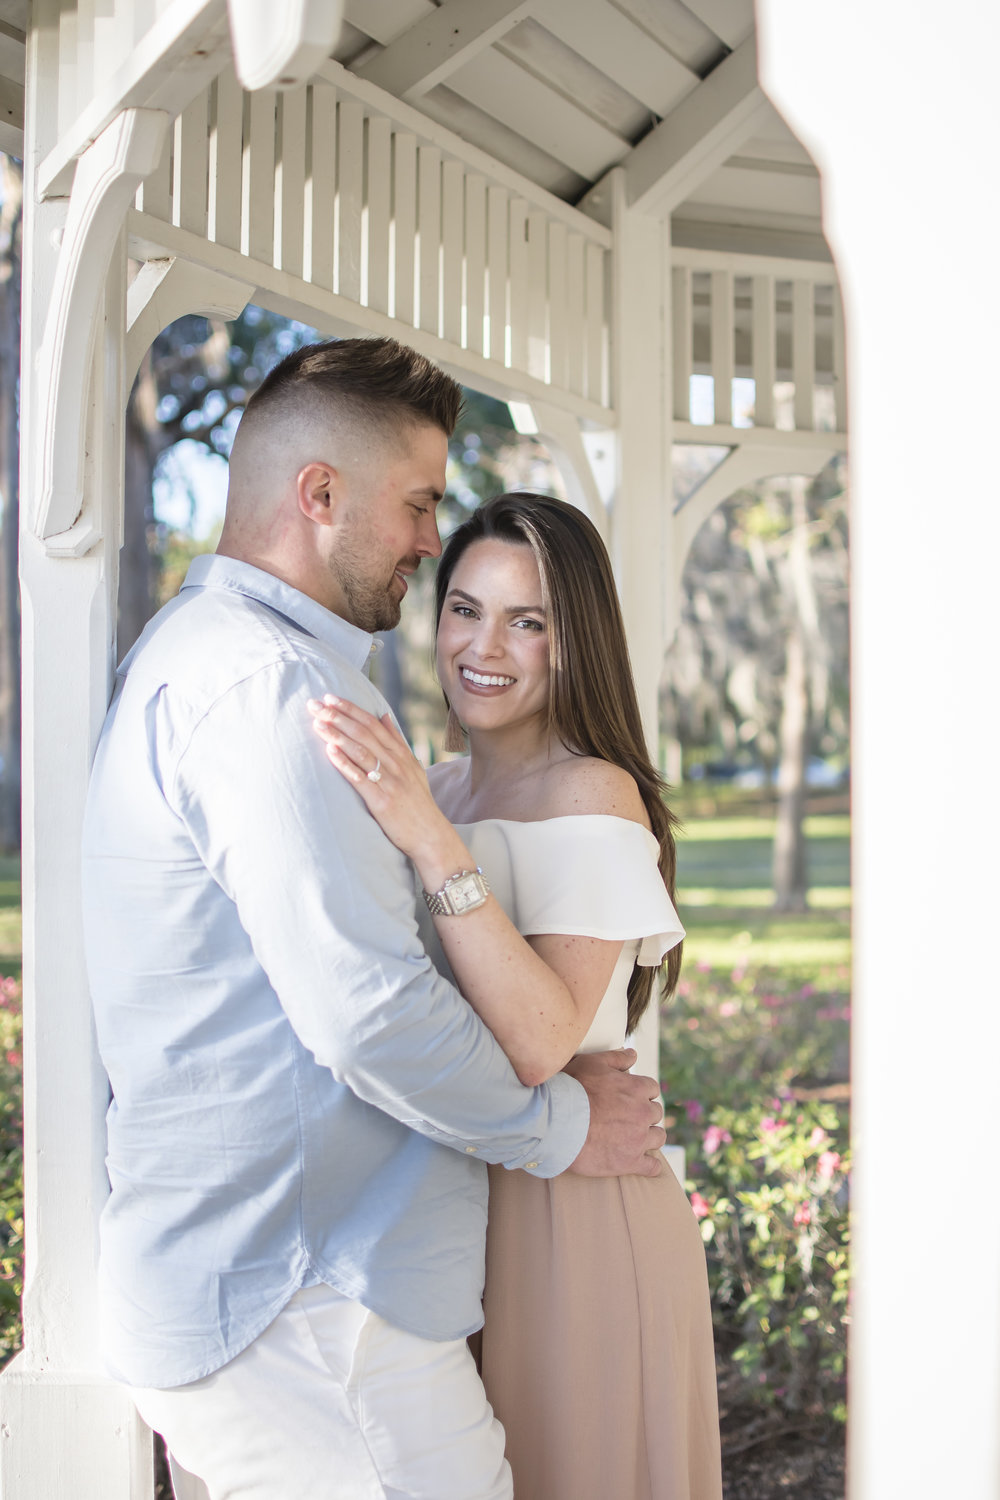 cypress-grove-park-engagement-session-orlando-photographer-yanitza-ninett-3.jpg